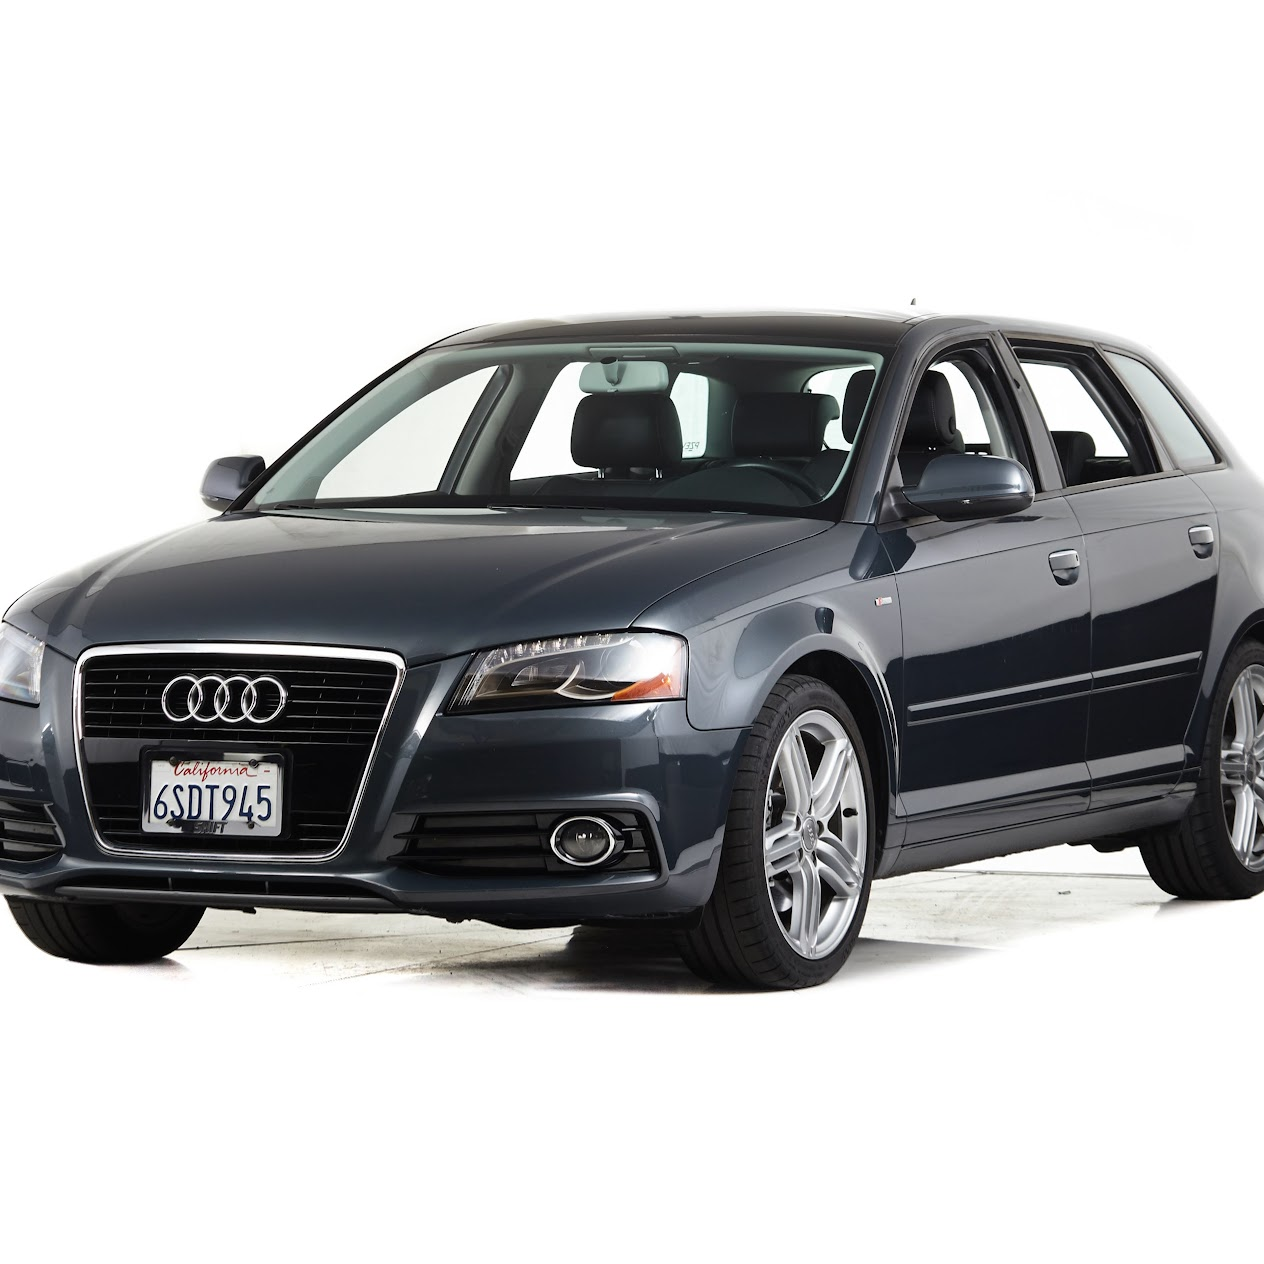 Audi q7 for sale in san diego